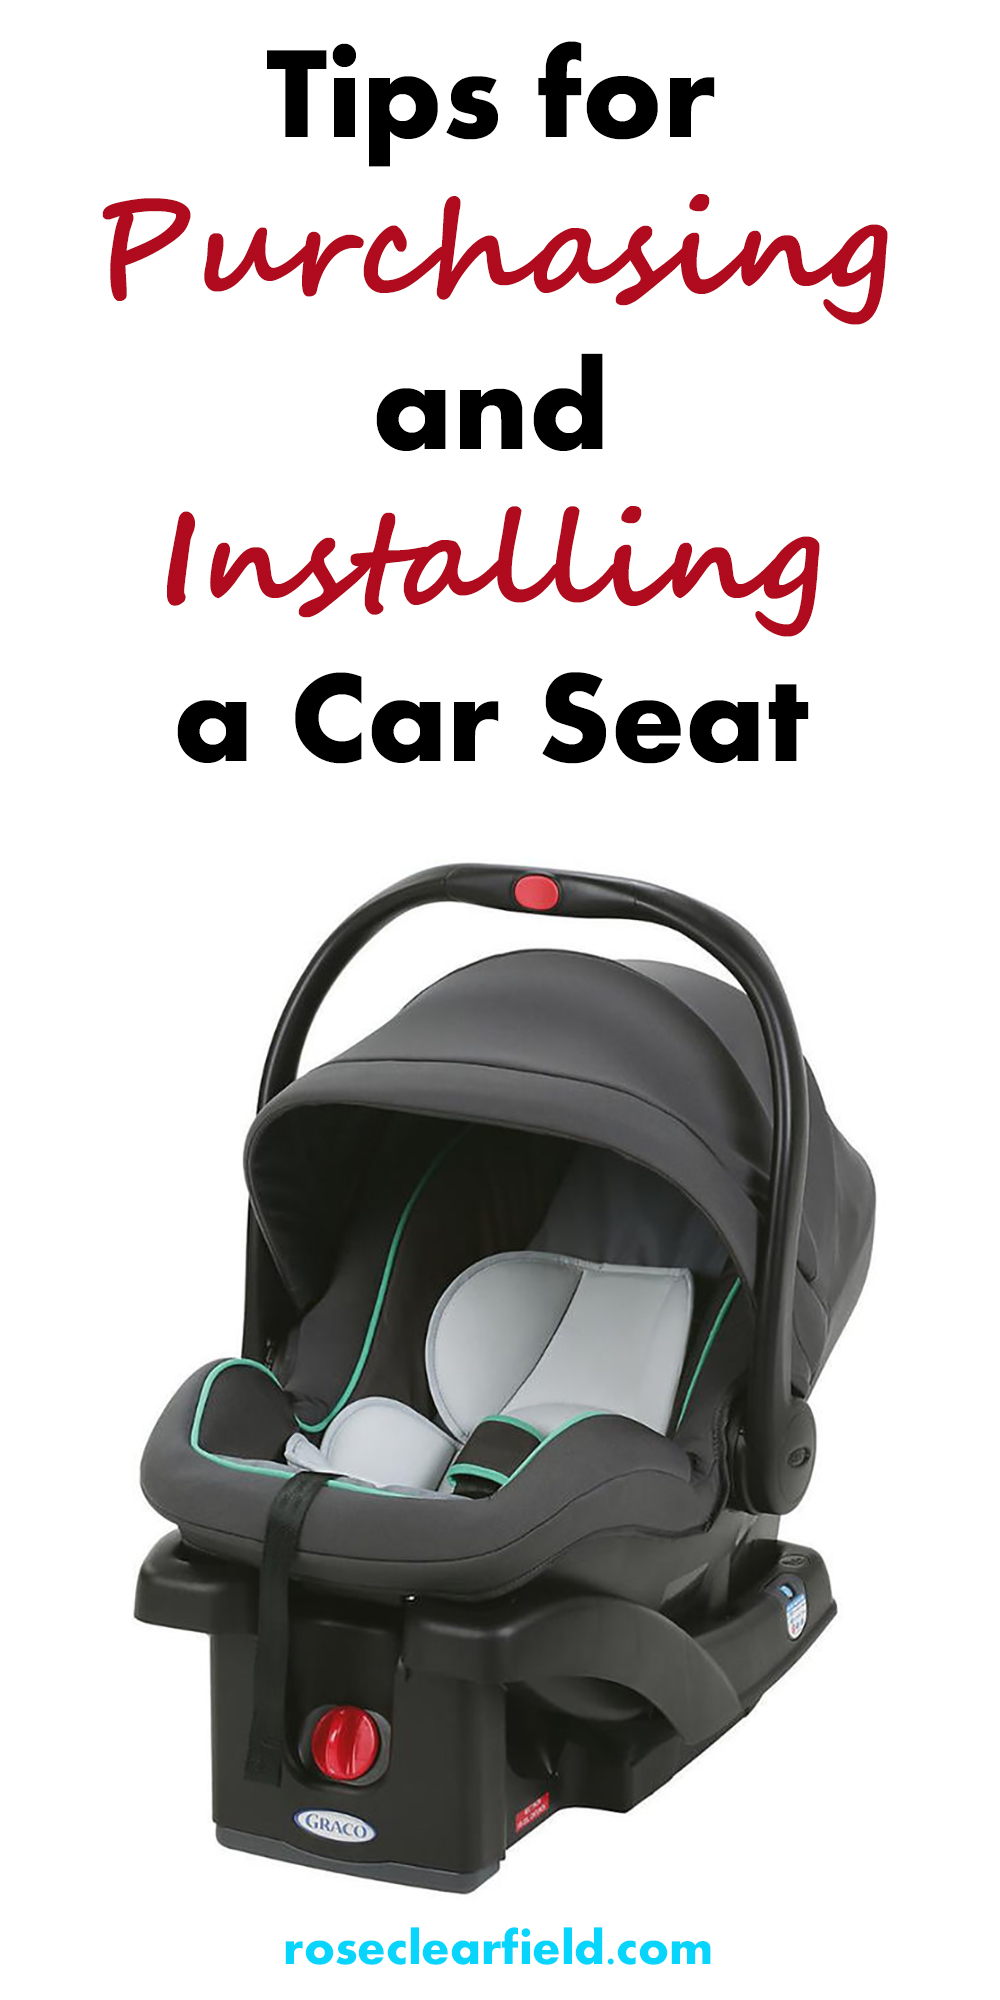 Tips for Purchasing and Installing a Car Seat | https://www.roseclearfield.com